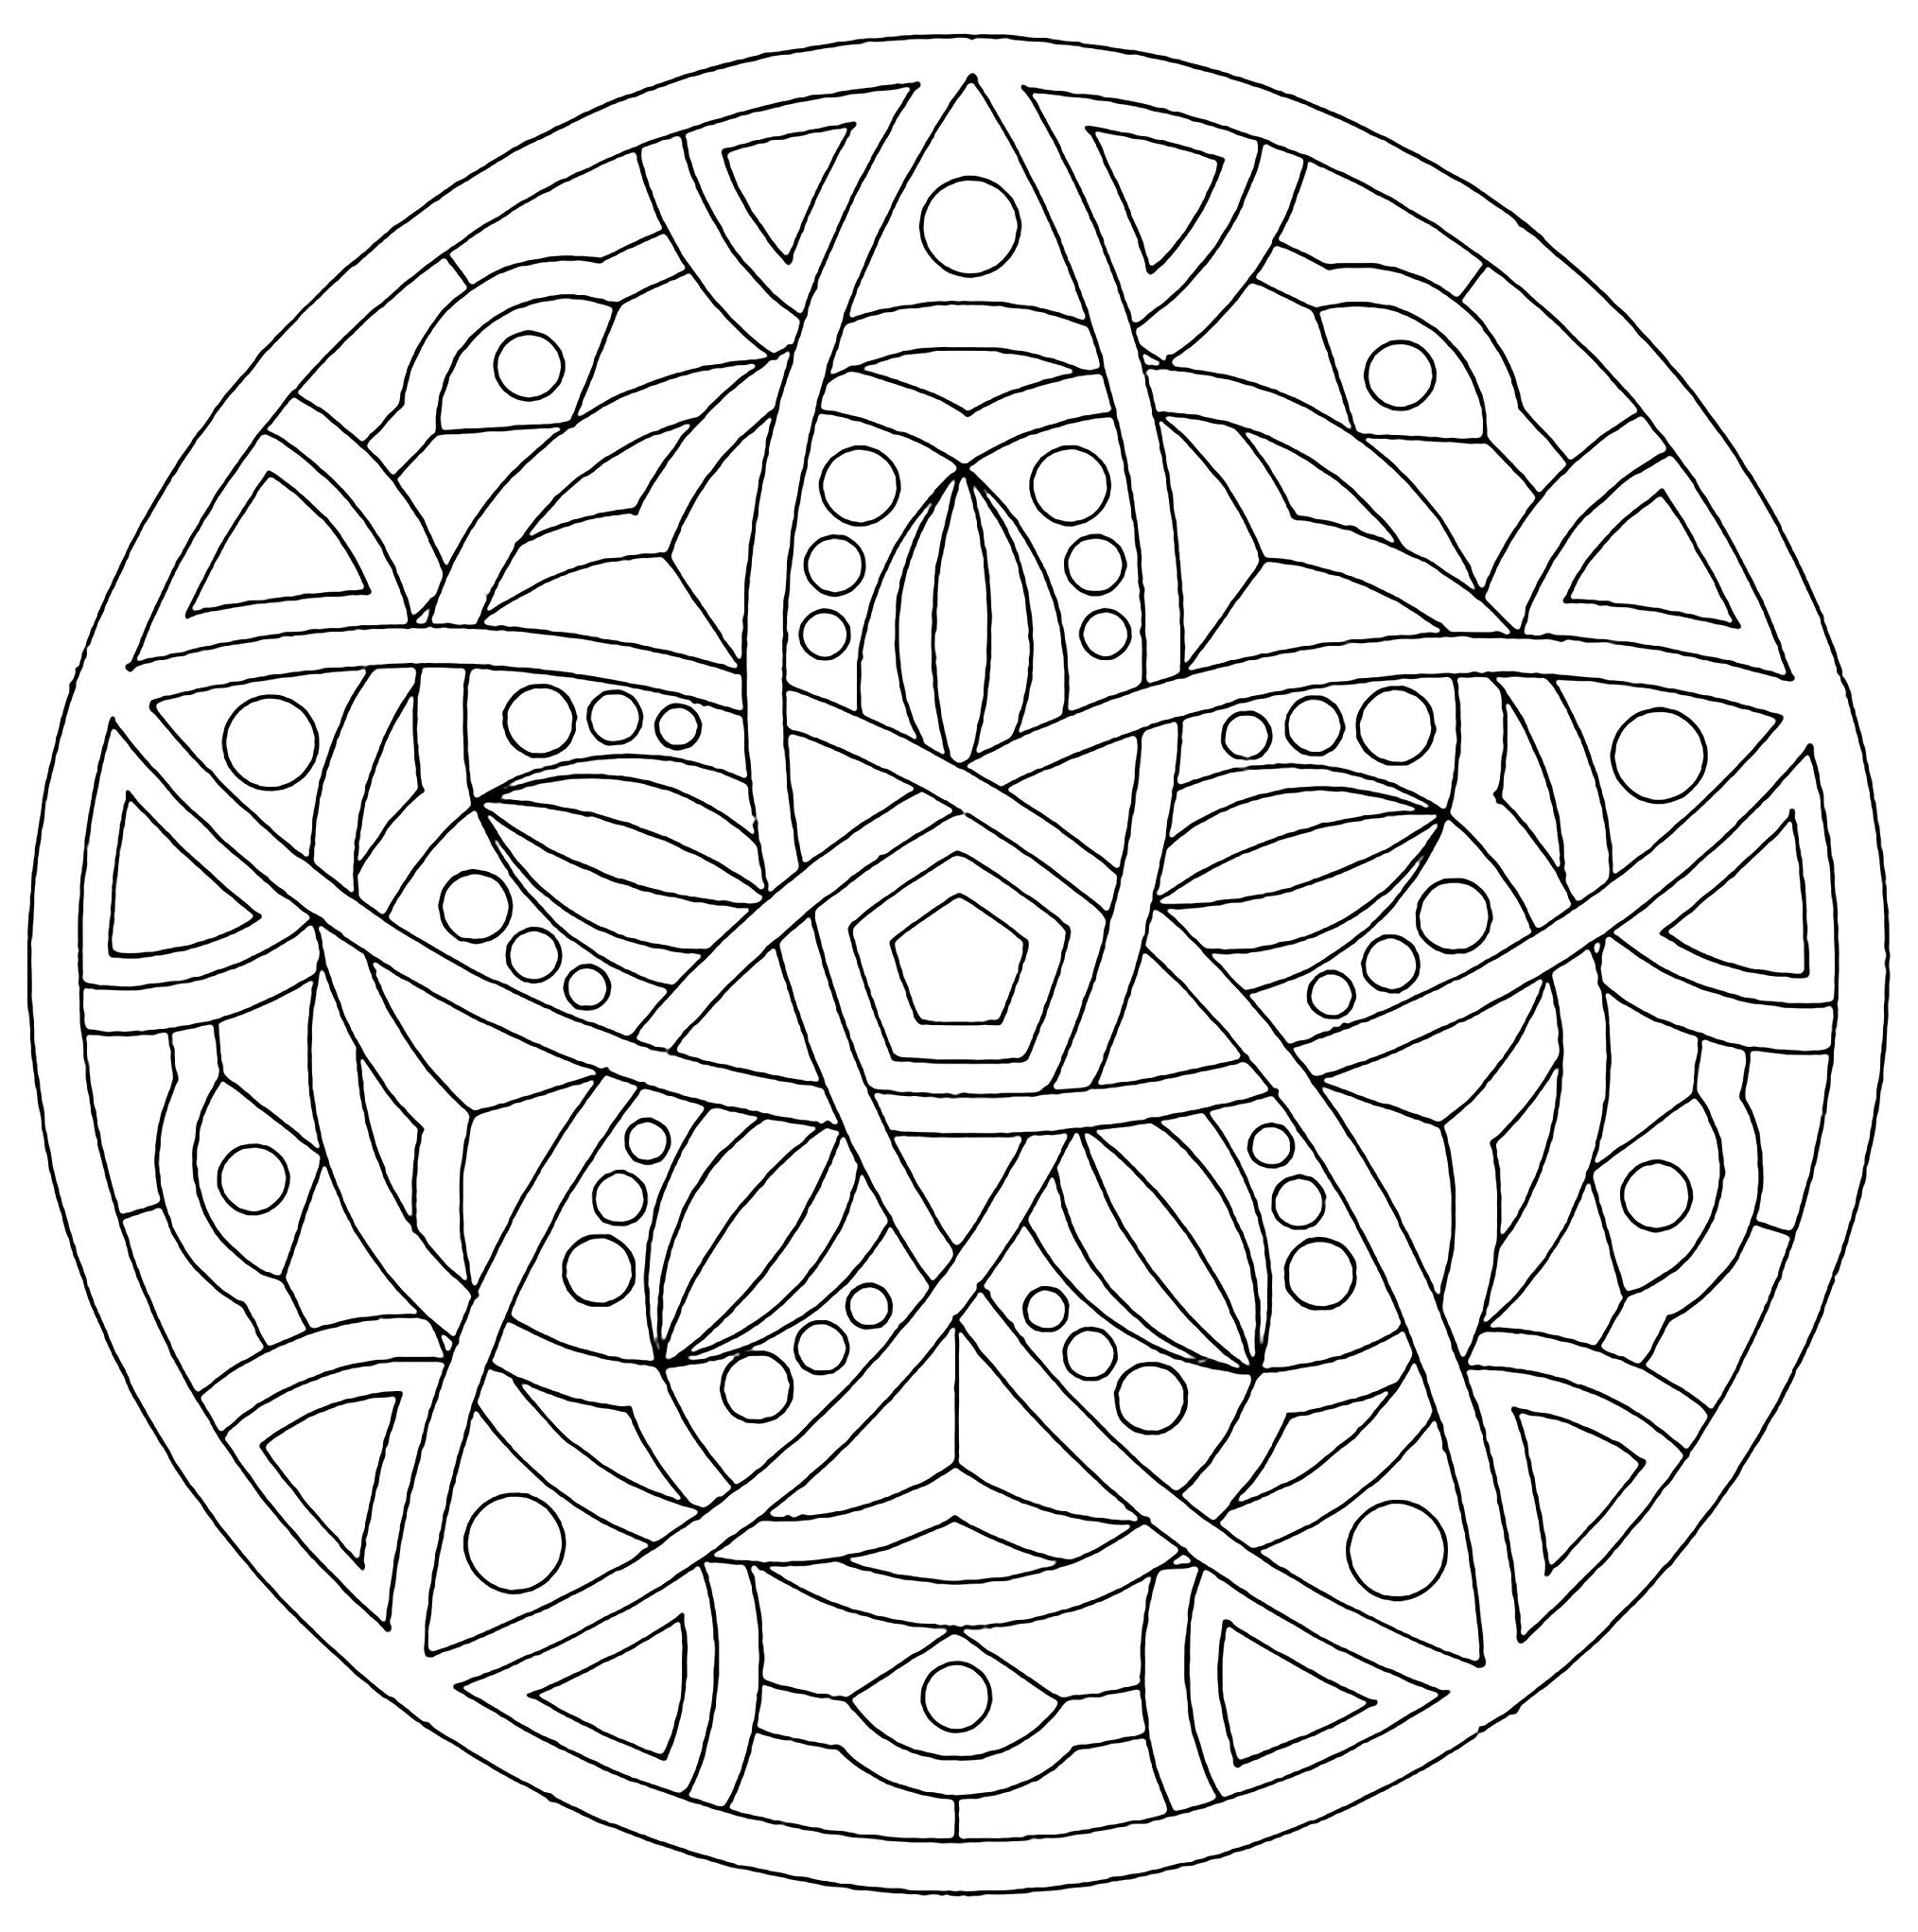 here are difficult mandalas coloring pages for adults to print for free mandala is a sanskrit. Black Bedroom Furniture Sets. Home Design Ideas